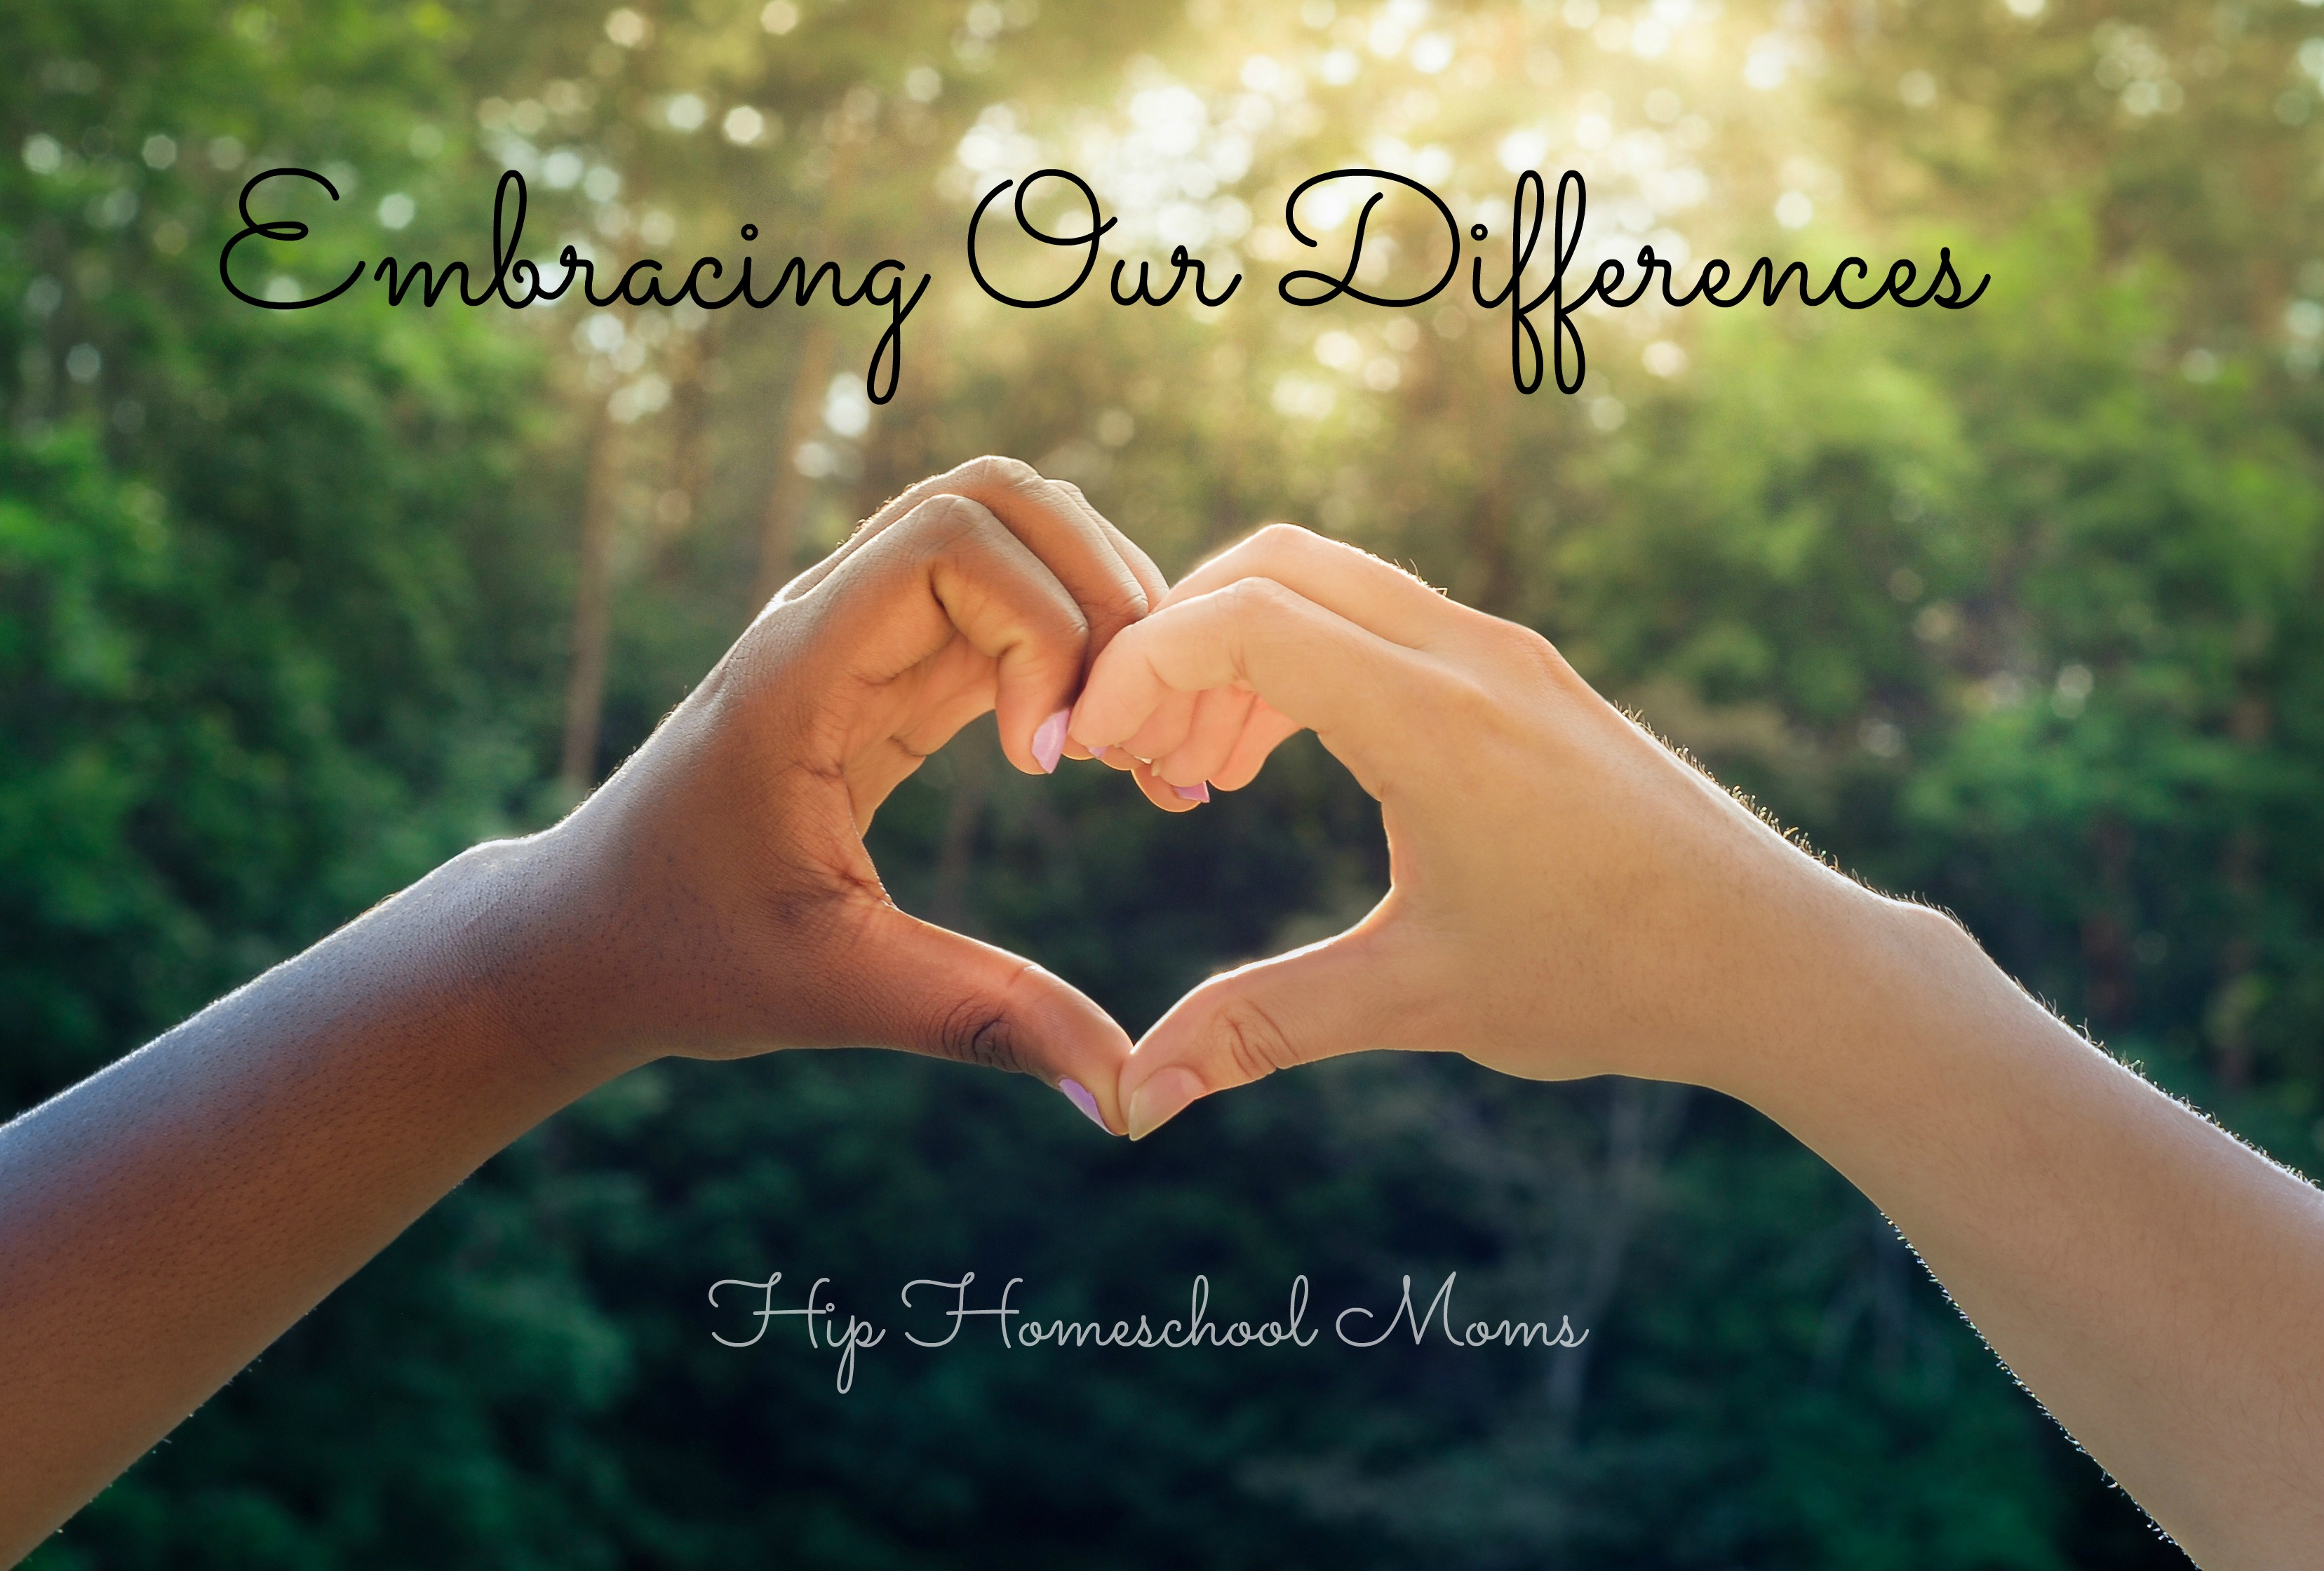 Embracing Our Differences |Hip Homeschool Moms